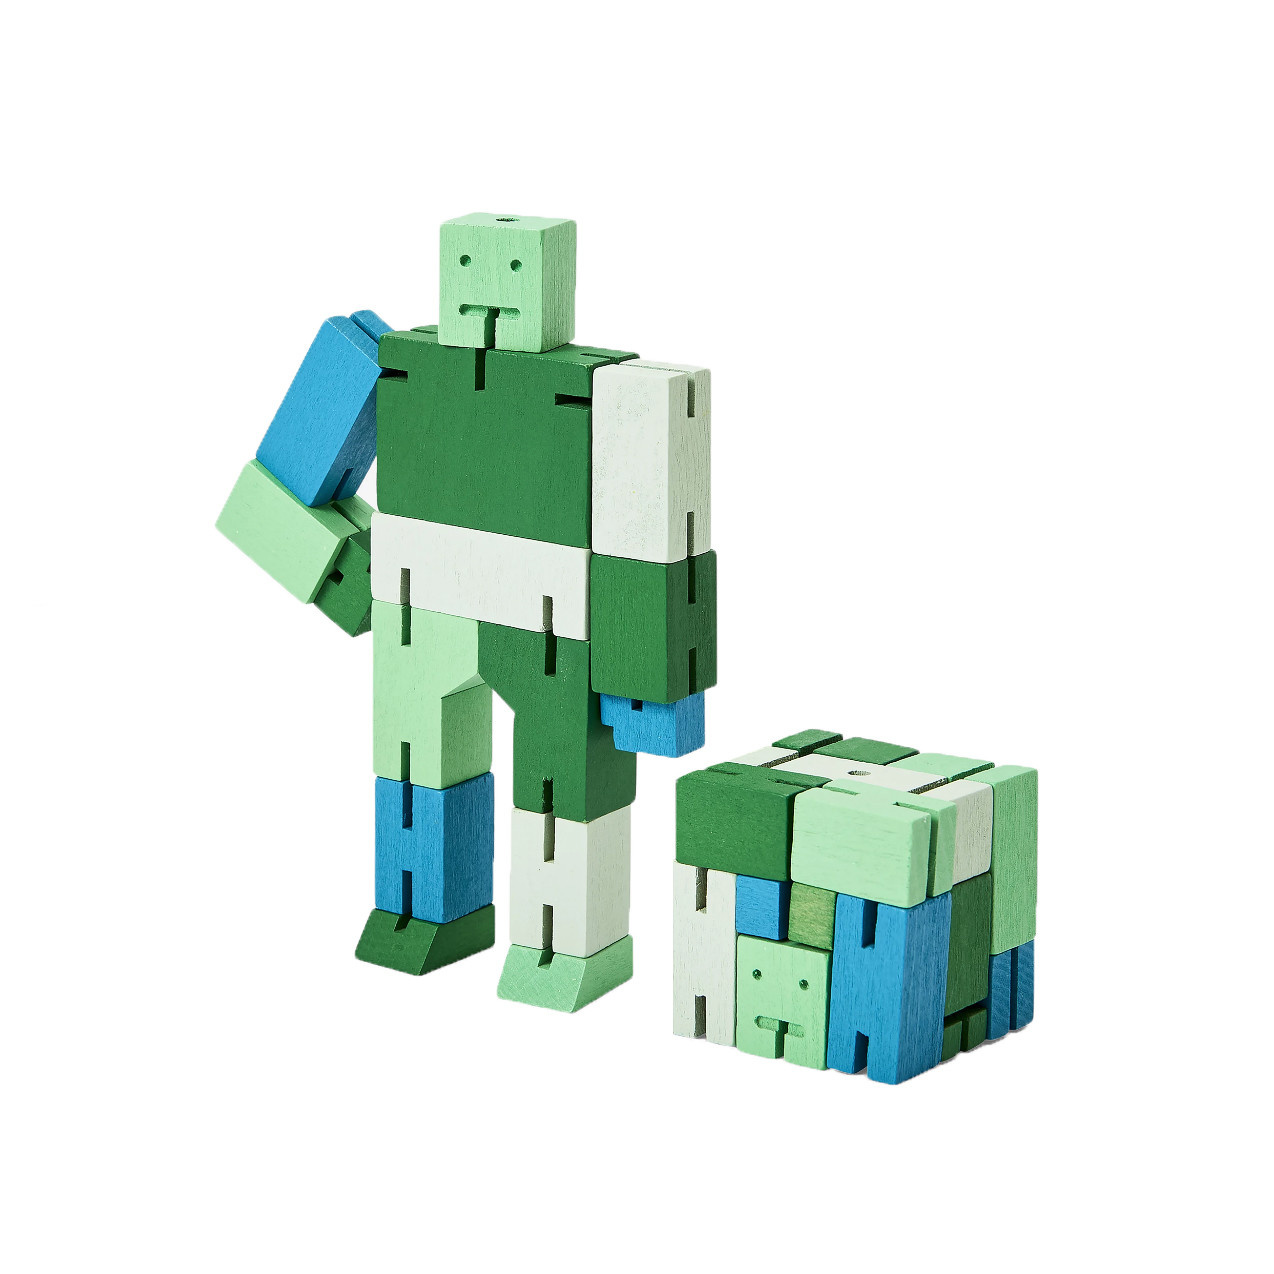 Areaware Cubebot Capsule Small - Green Multi